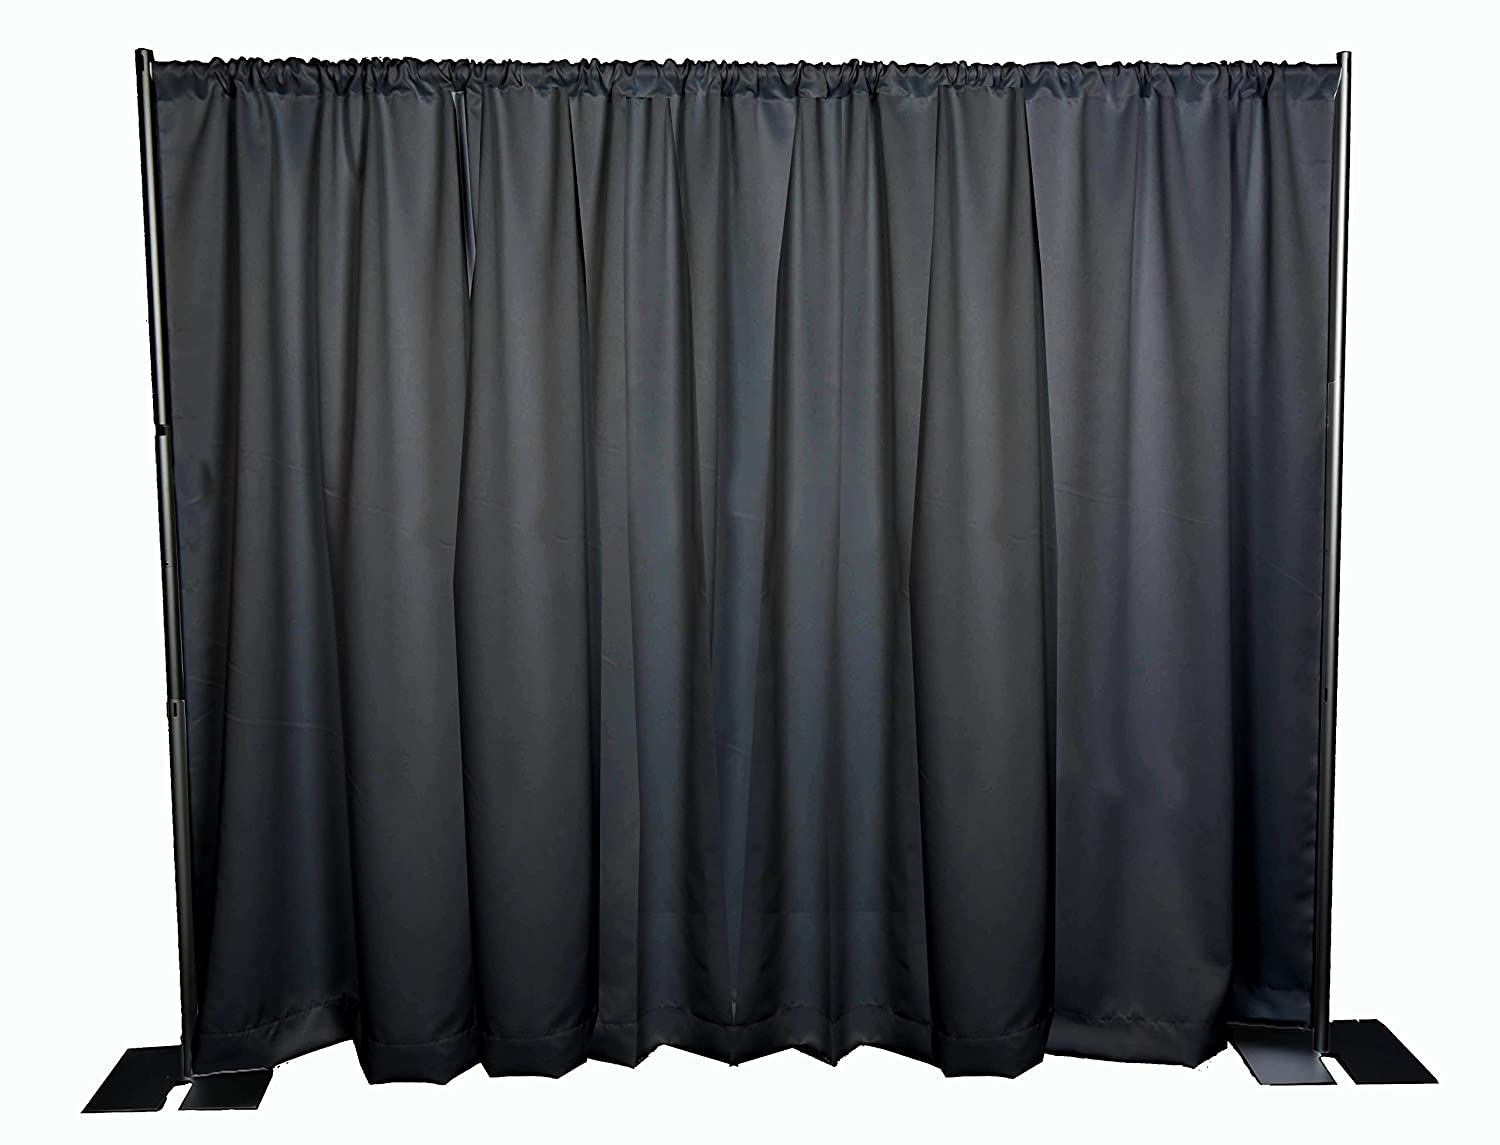 dressing control are drape kit photo pipe theater and kits dividers crowd rooms backdrops drapes room perfect holiday stage stand shoot wedding rk for events backdrop